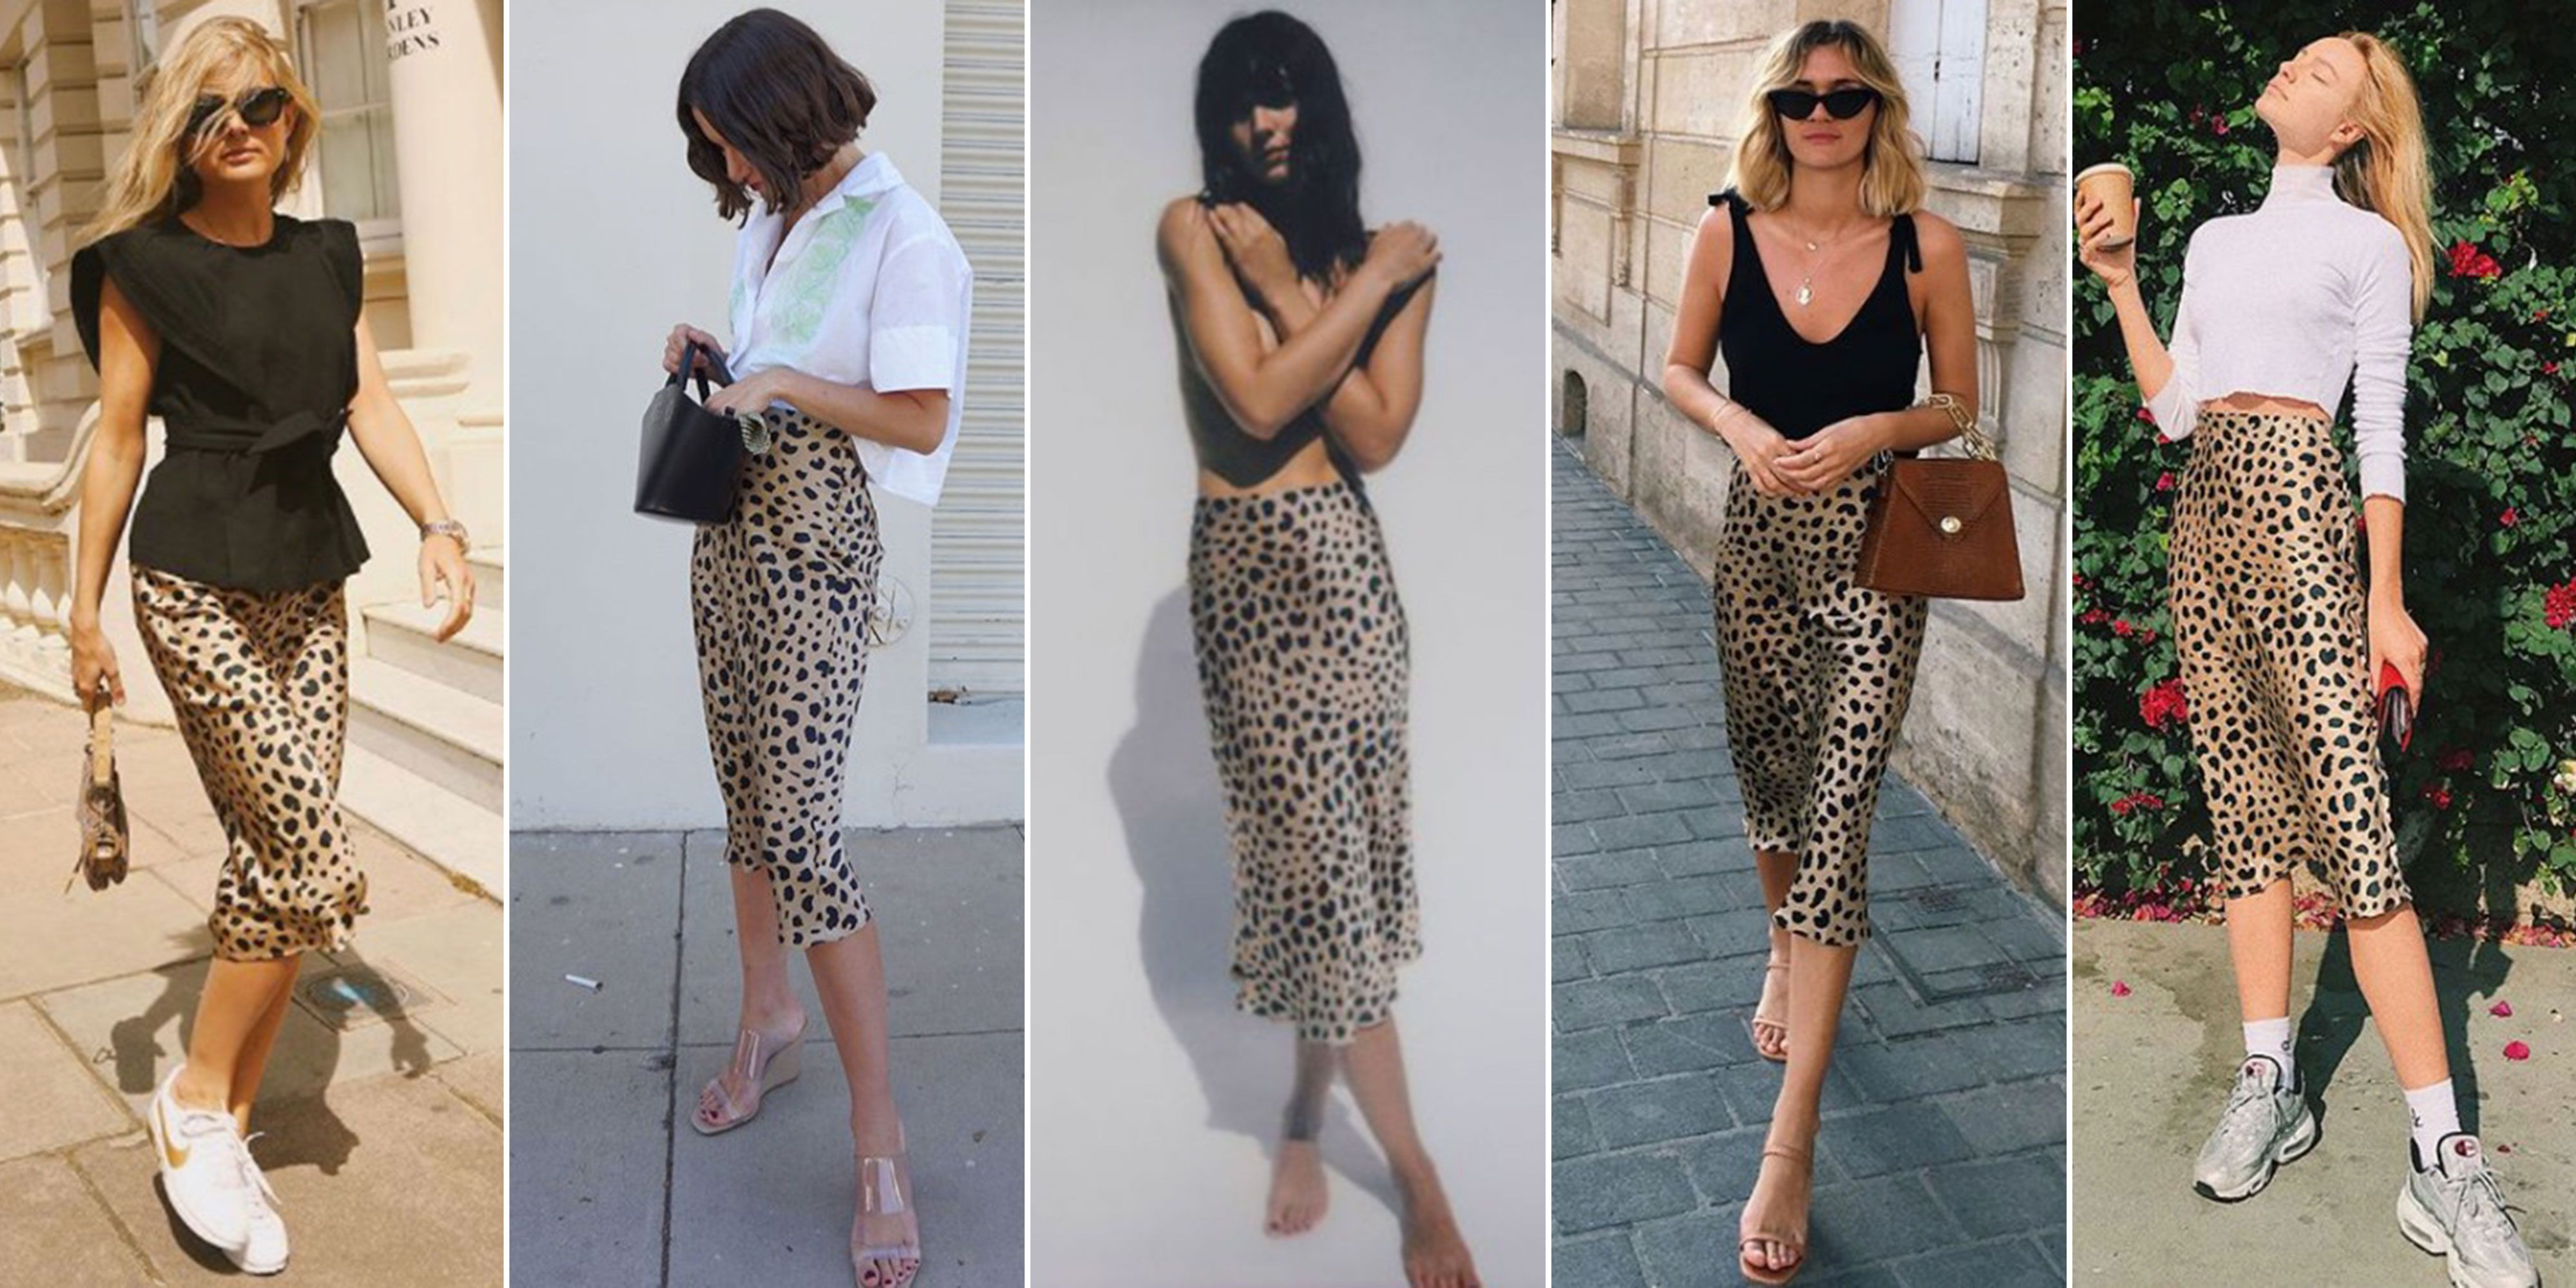 f40cc287976d Everyone is wearing Realisation Par s Naomi skirt – Realisation Par s  leopard skirt is all over Instagram